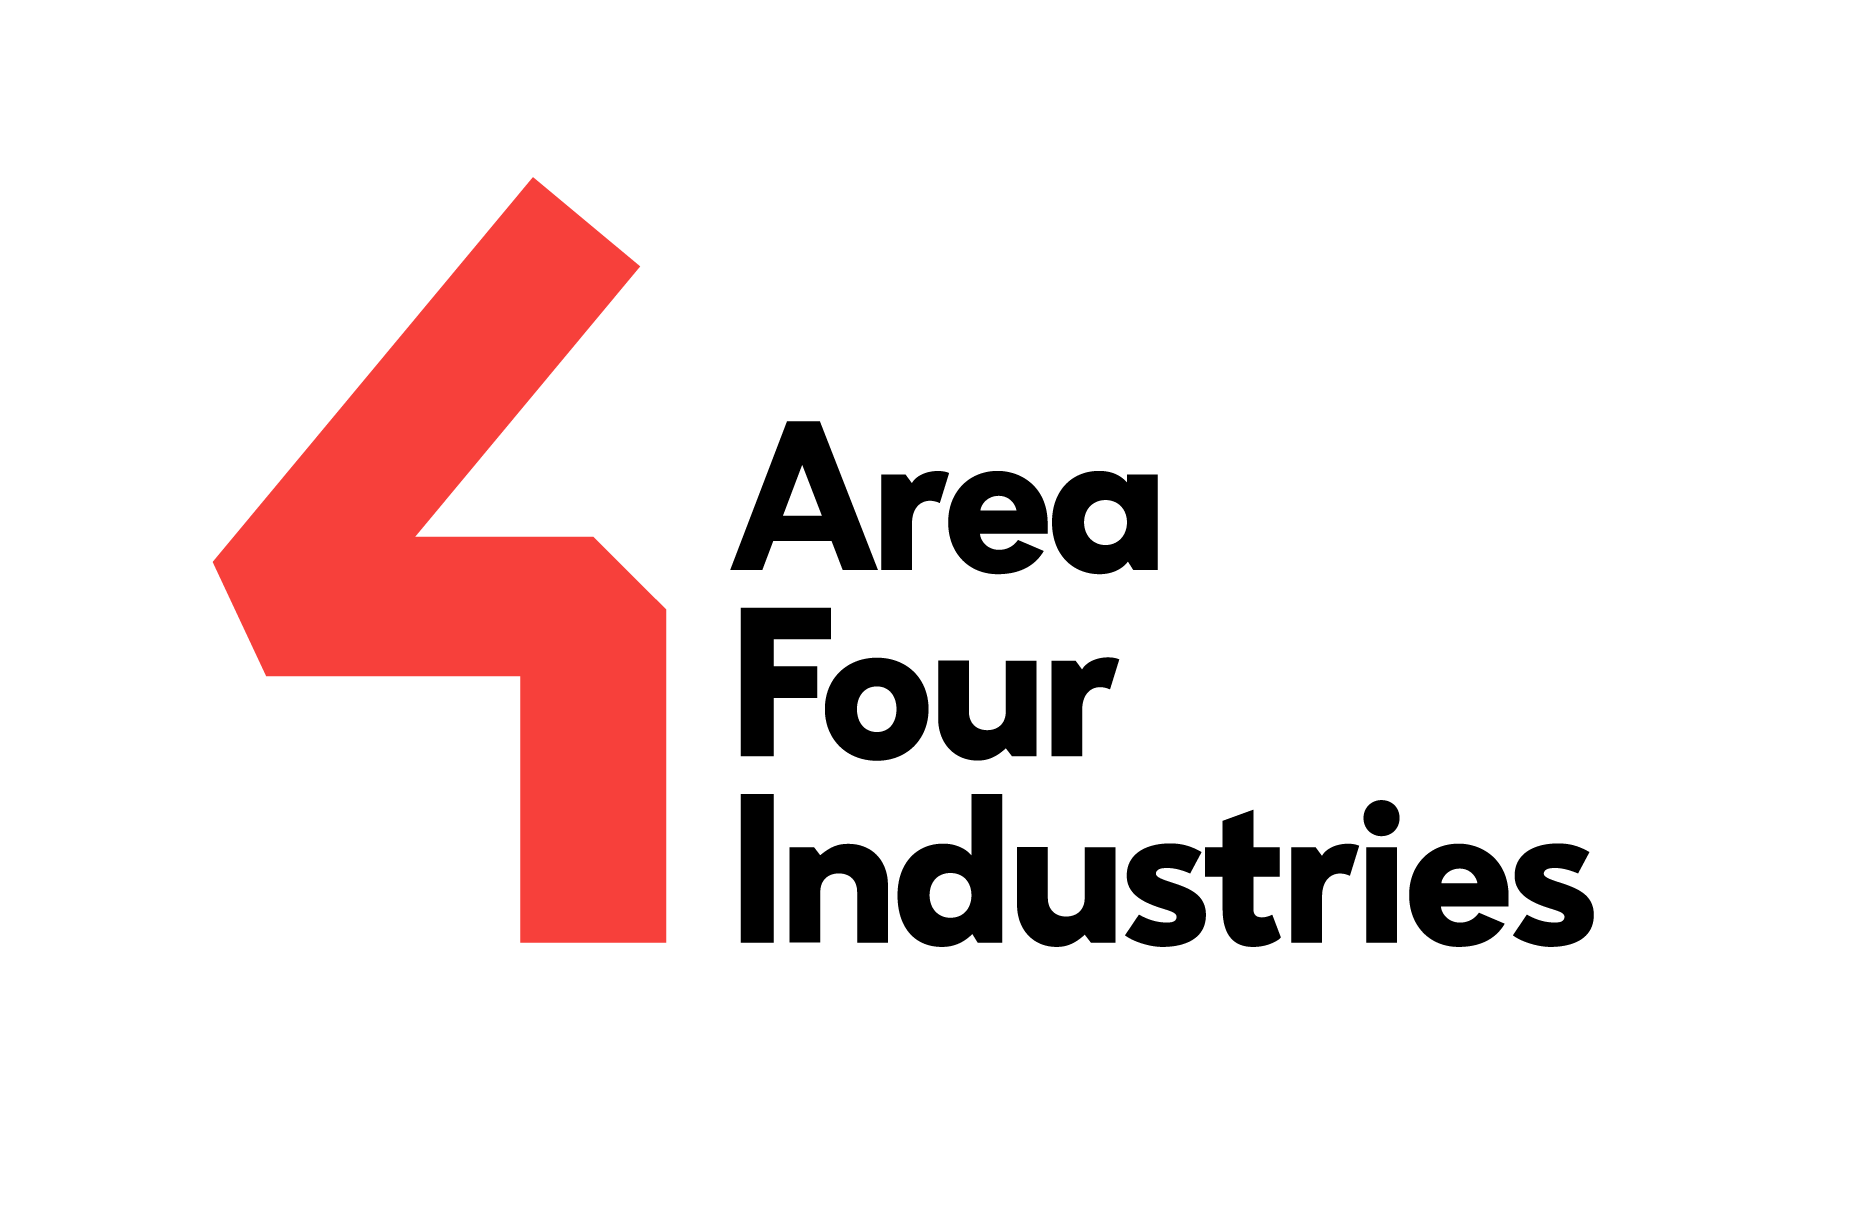 Area Four Industries